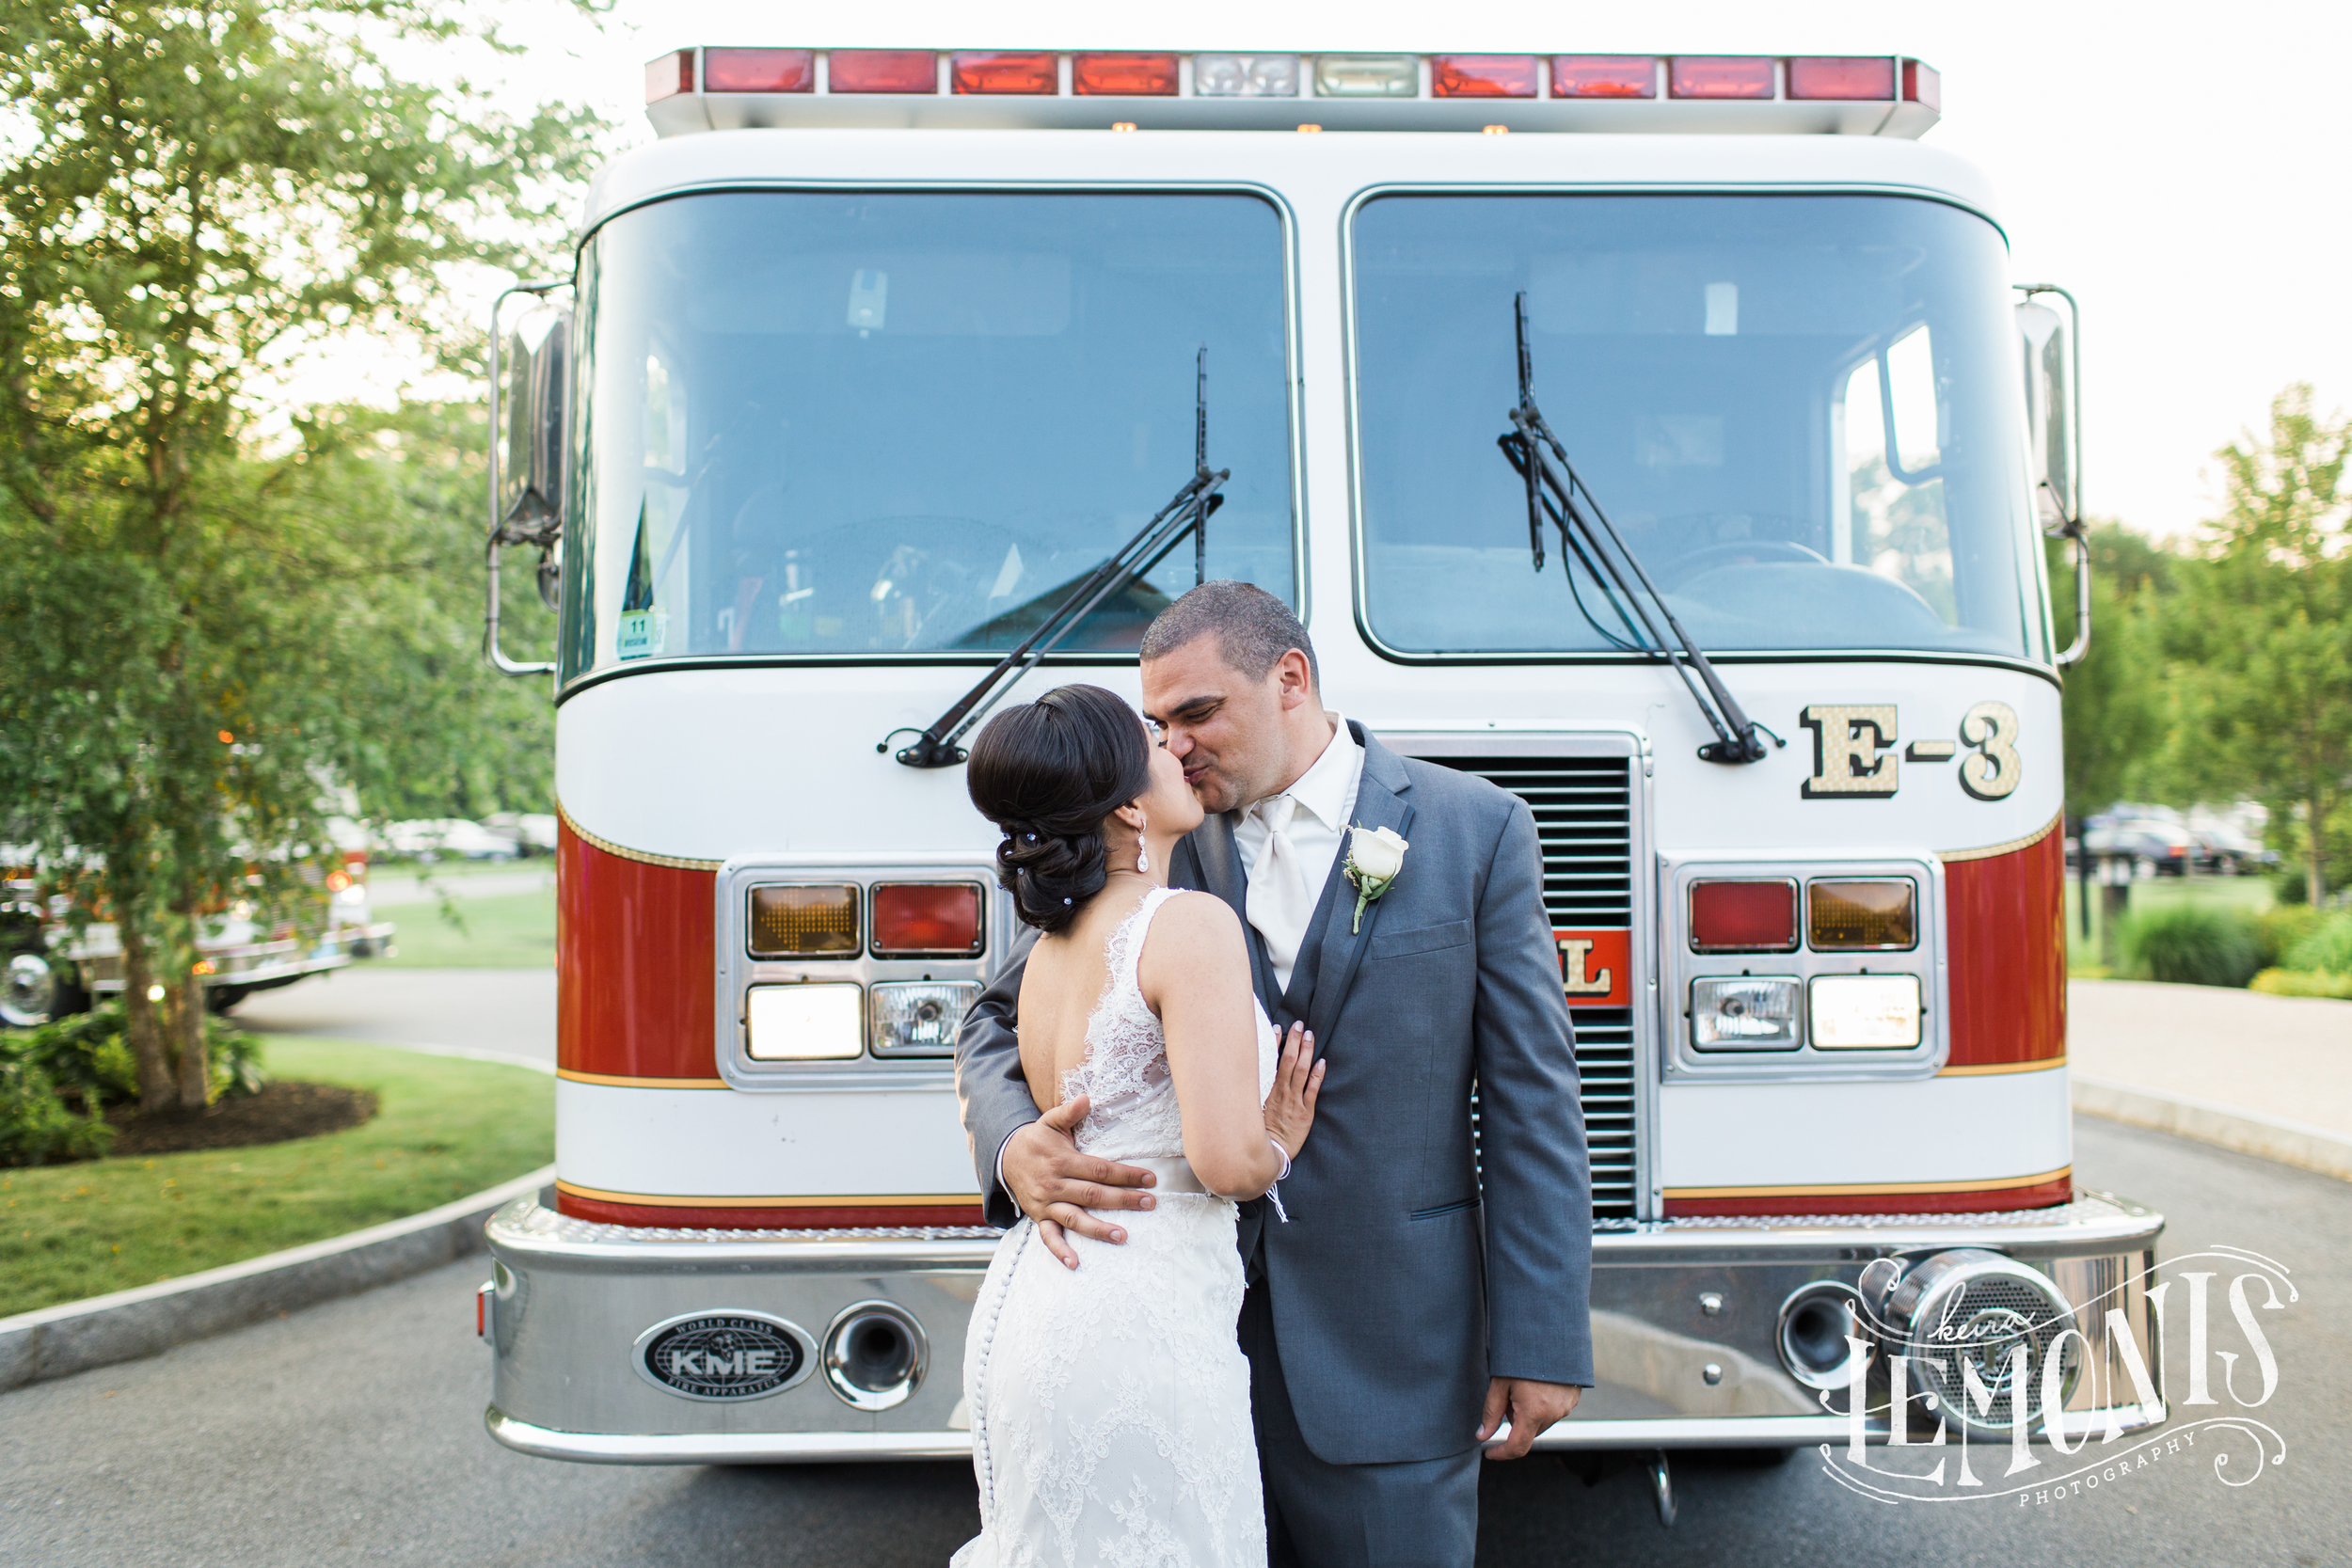 A fire couldn't stop them from enjoying their big day...